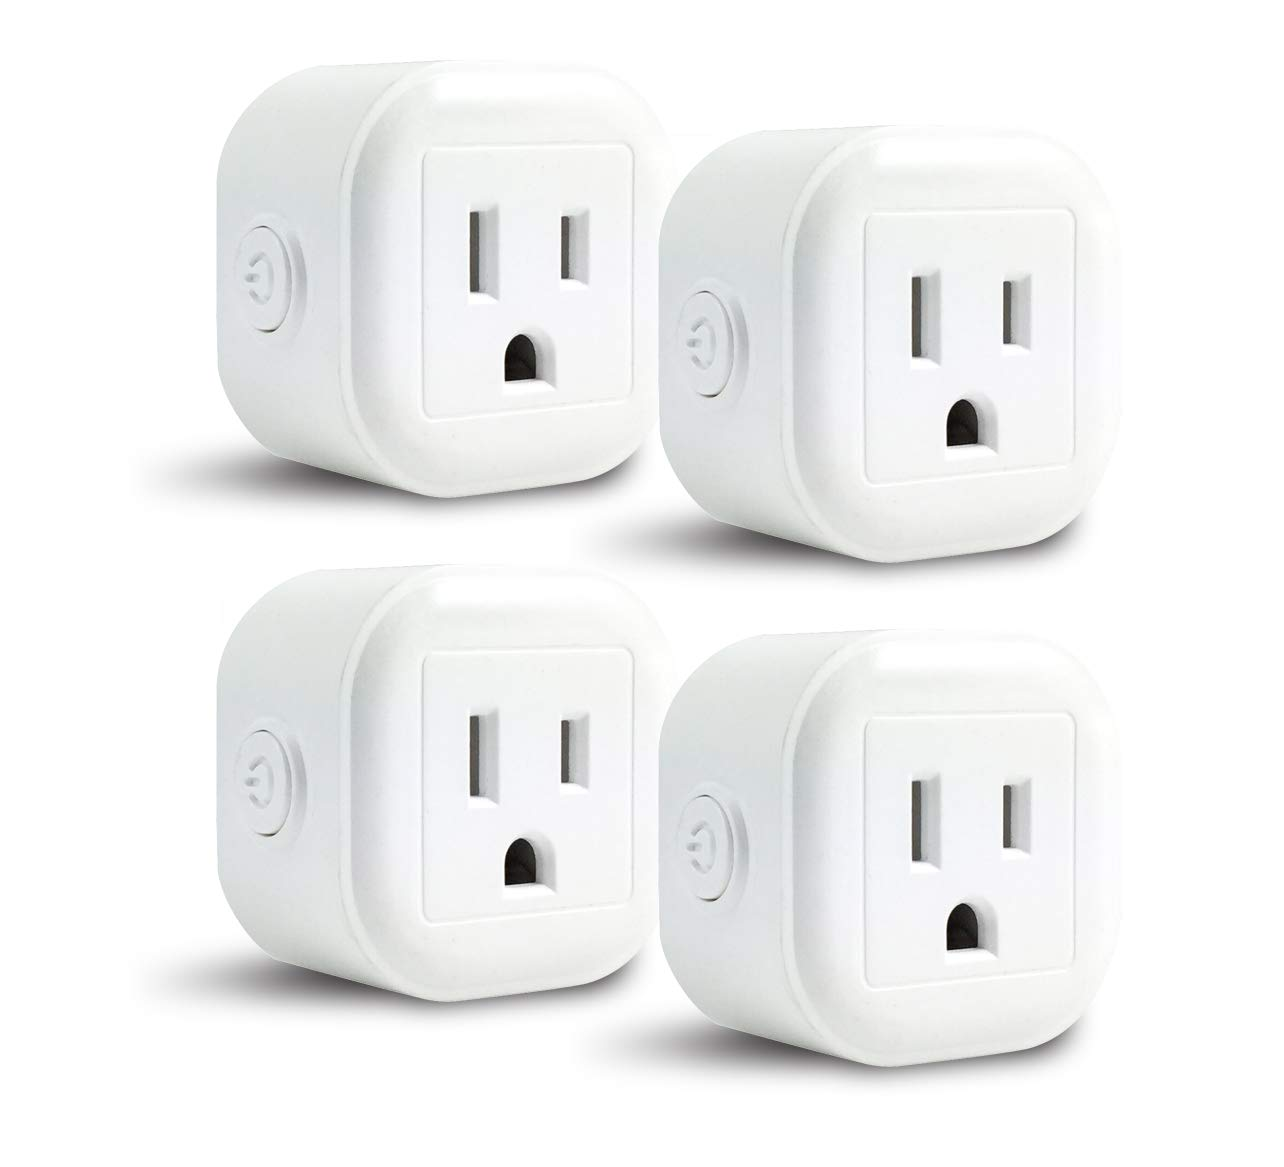 GoldenDot WiFi Mini Plug, Smart Home Power Control Socket, Wireless Control Your Household Appliance from Anywhere, No Hub Required, Compatible with Alexa and Google Home (4Pack)